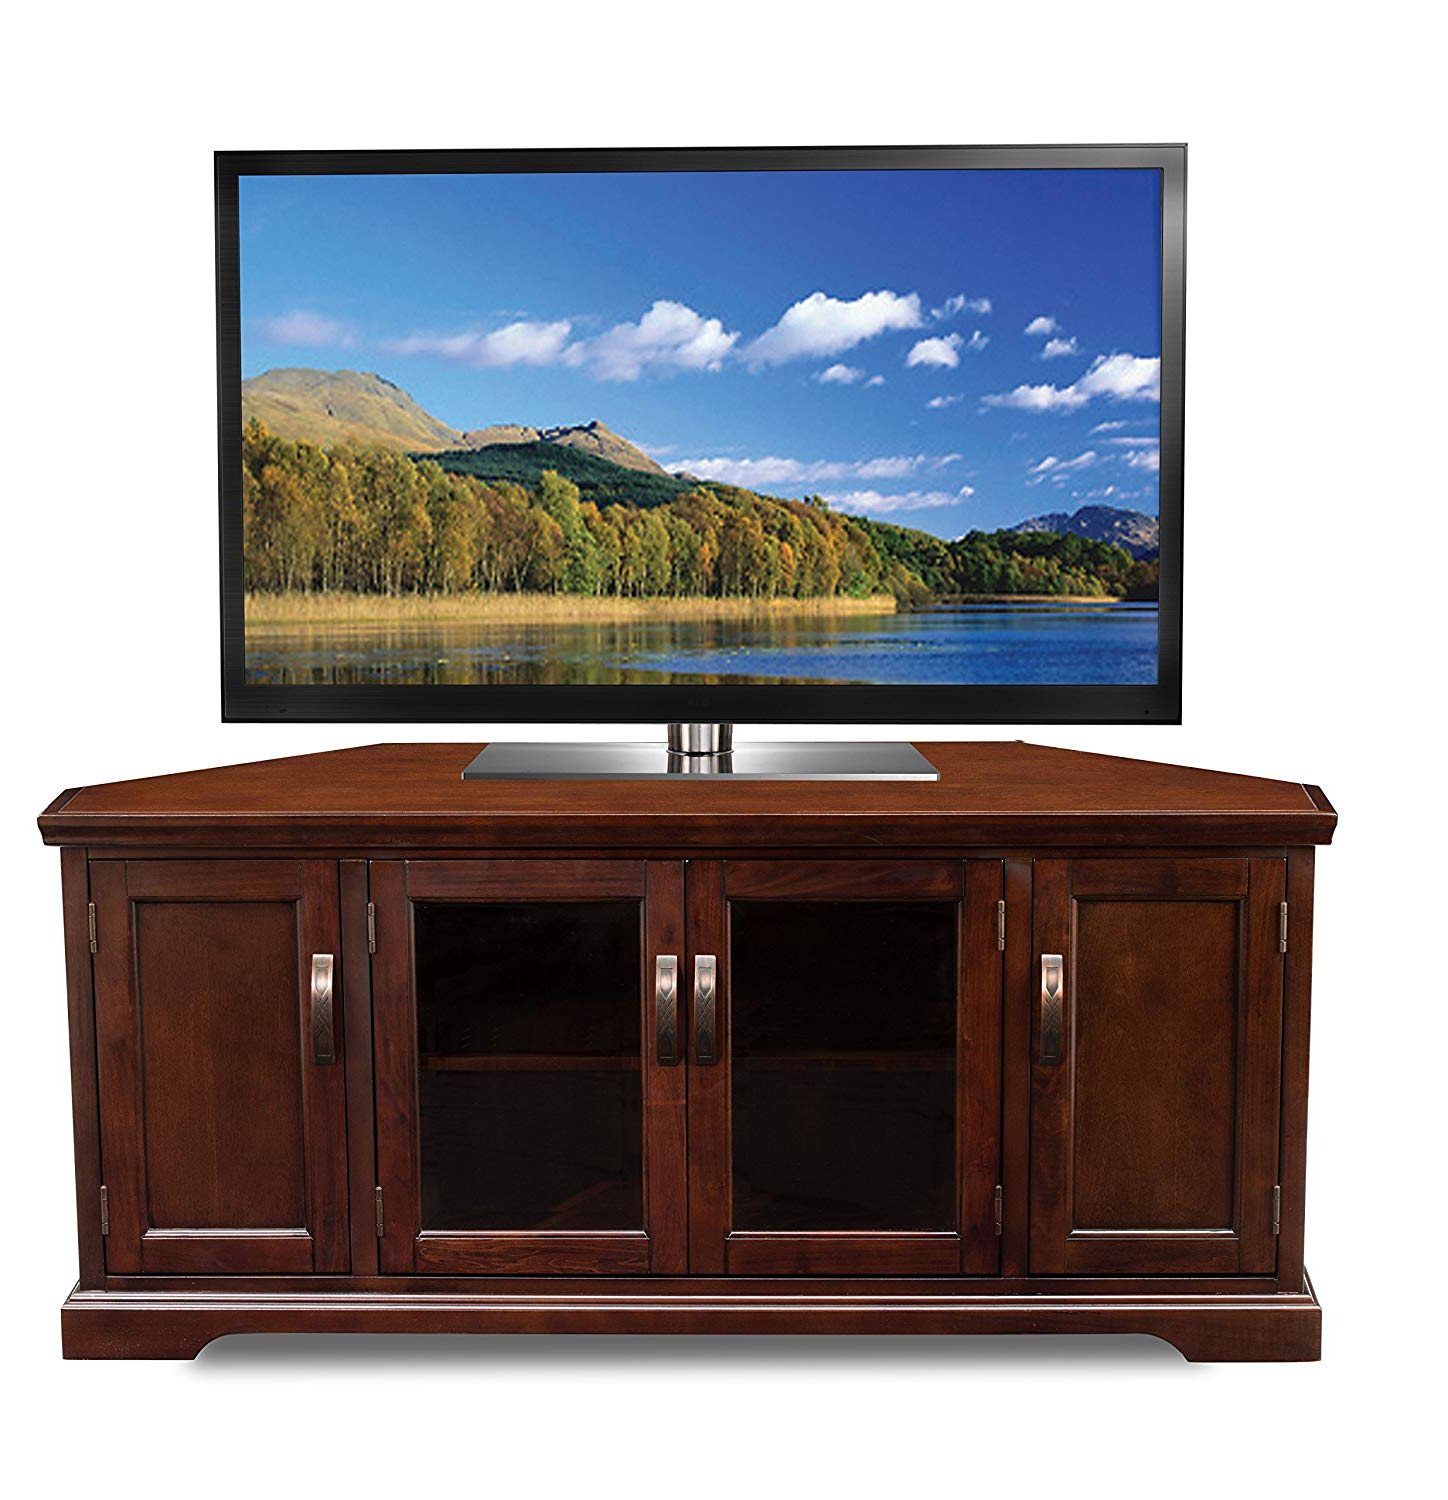 "Well Known Cherry Wood Tv Stands With Regard To Leick 81386 Chocolate Cherry Corner Tv Stand, 60"": Amazon (View 18 of 20)"